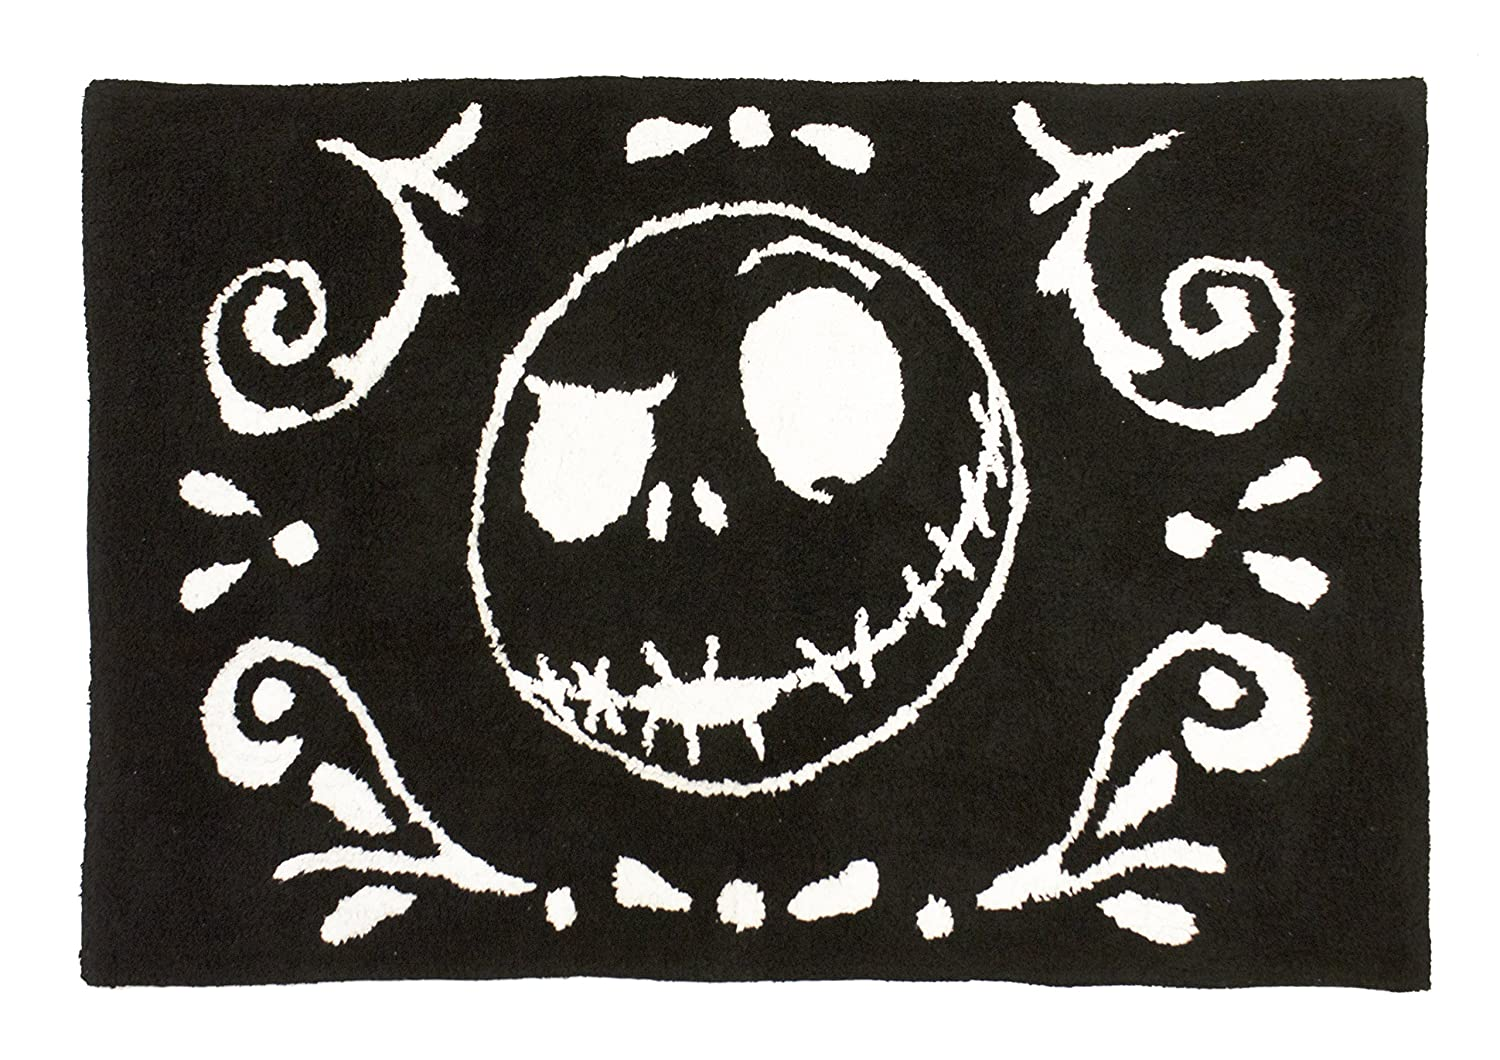 Disney Nightmare Before Christmas Meant To Be Cotton Tufted Bath Rug Jay Franco & Sons JF07781